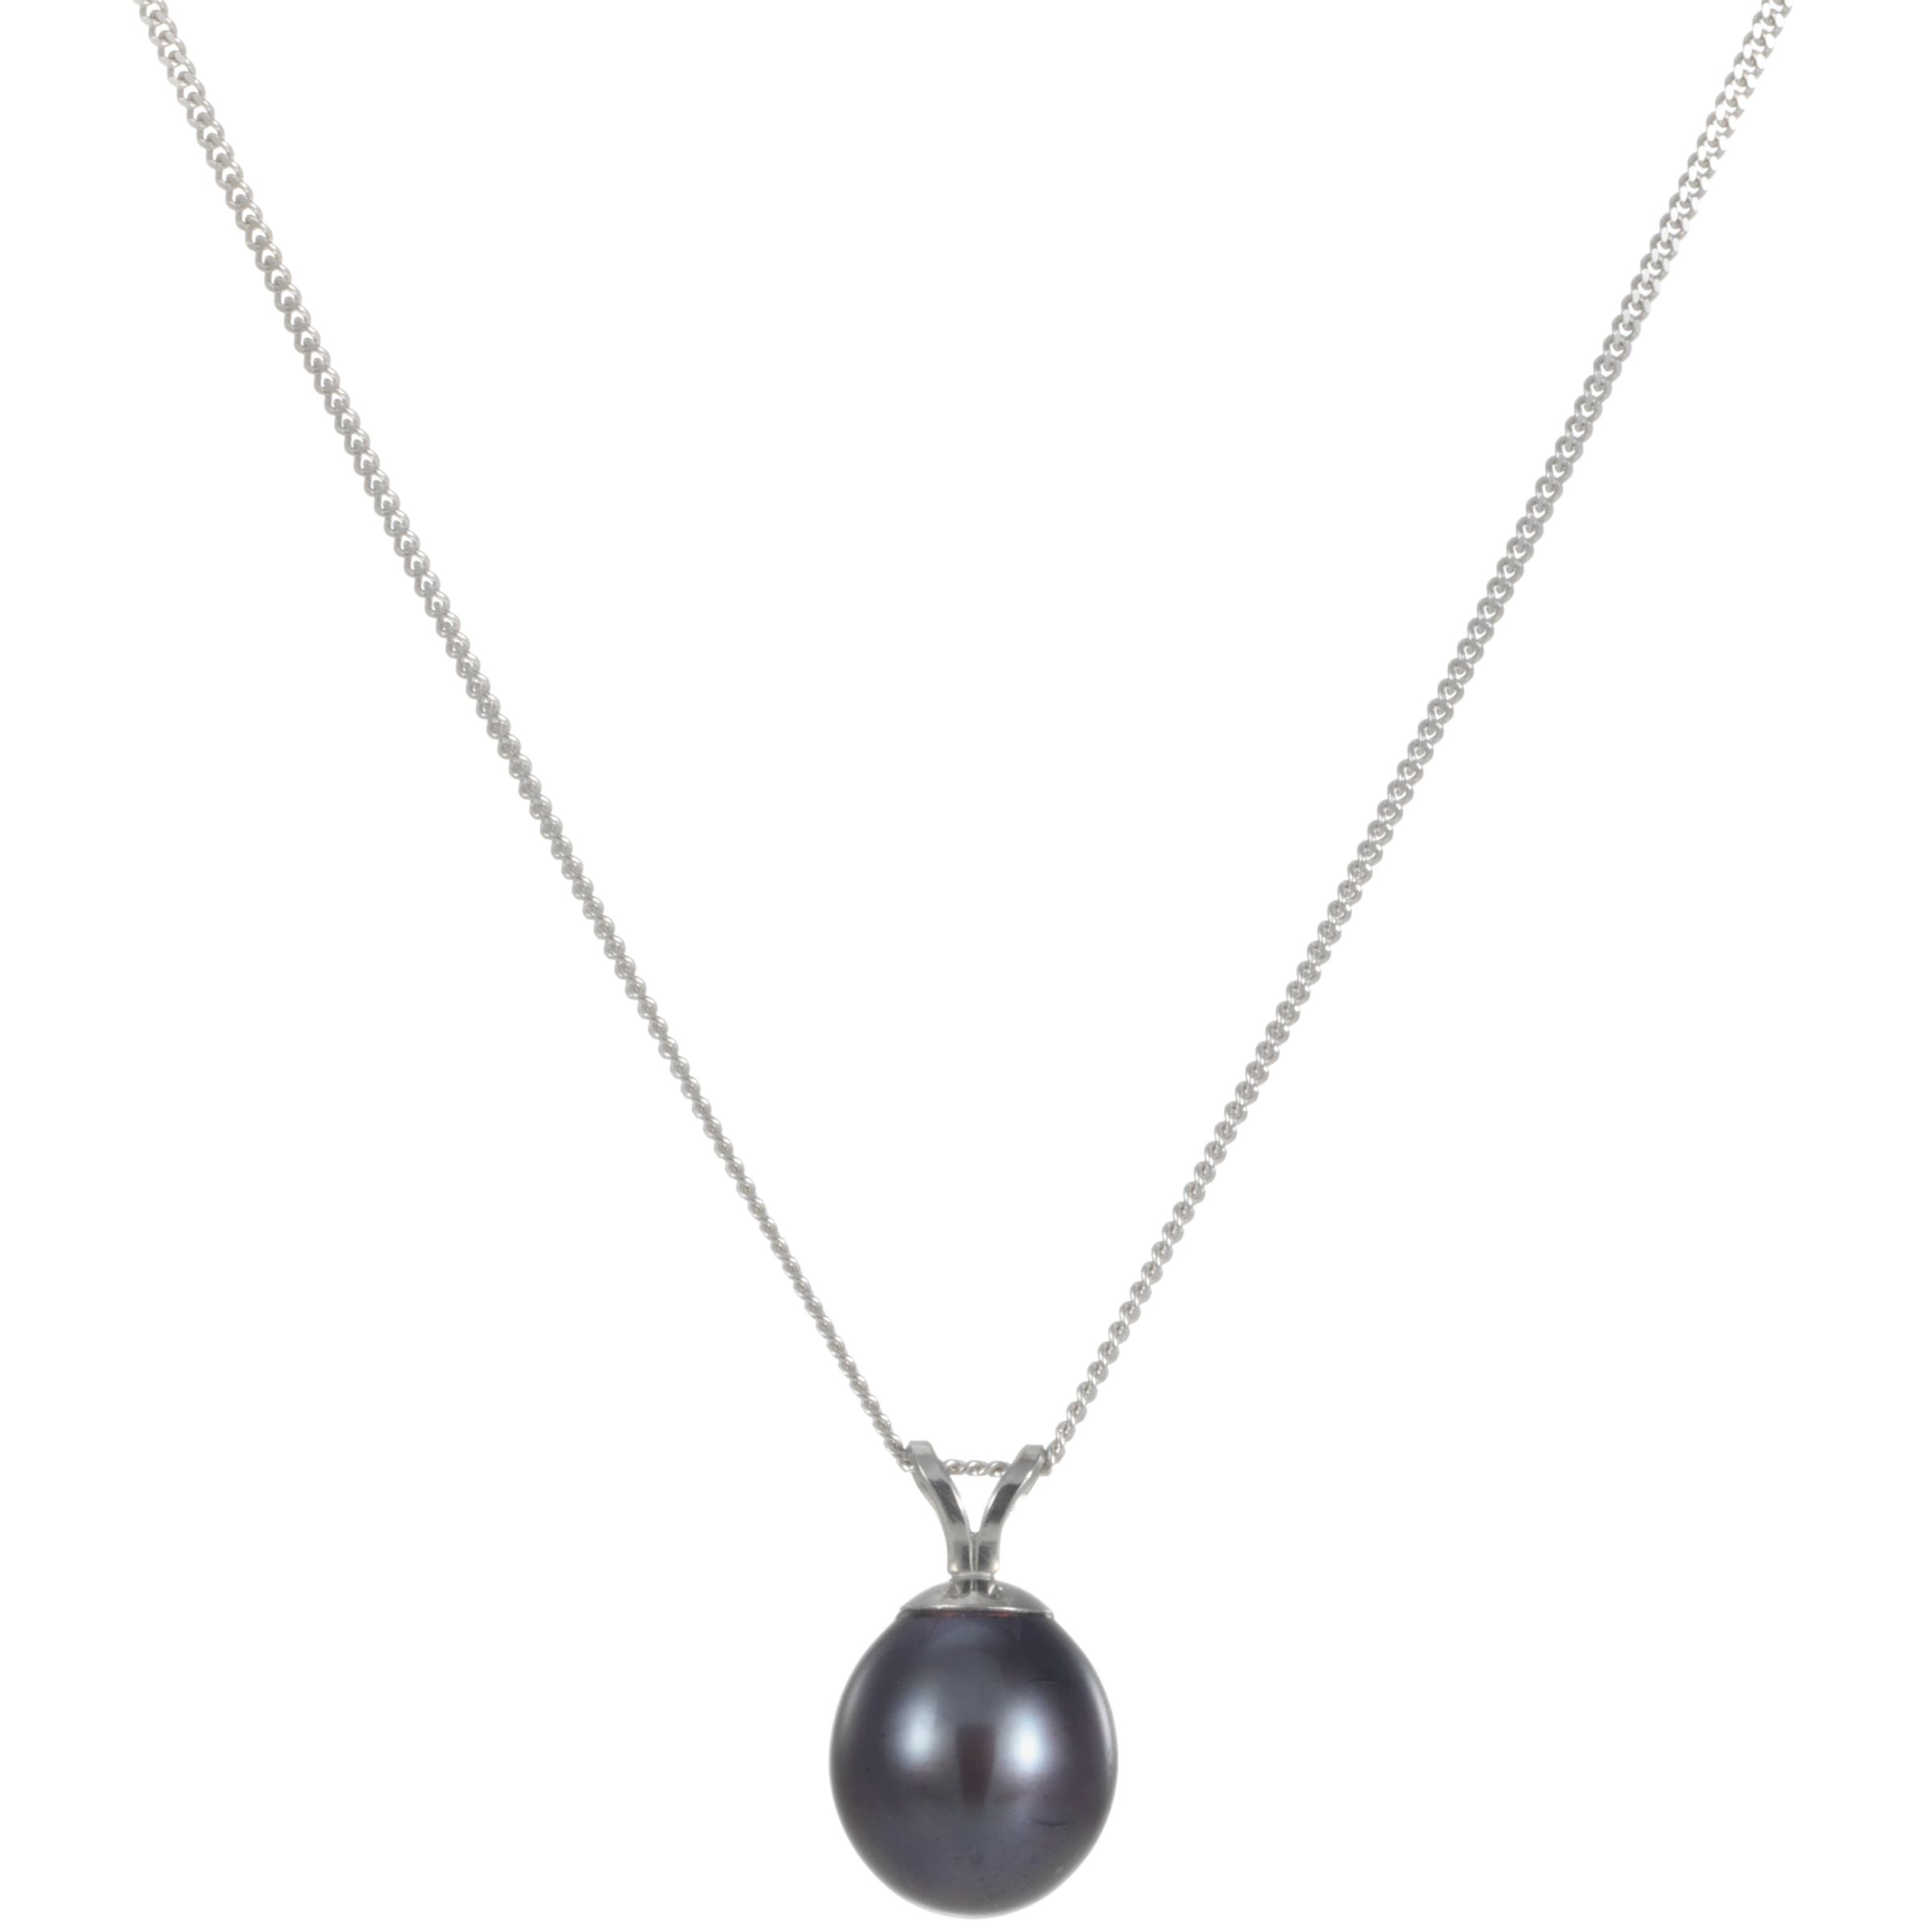 9ct White Gold Blueberry Cultured Pearl Pendant Necklace